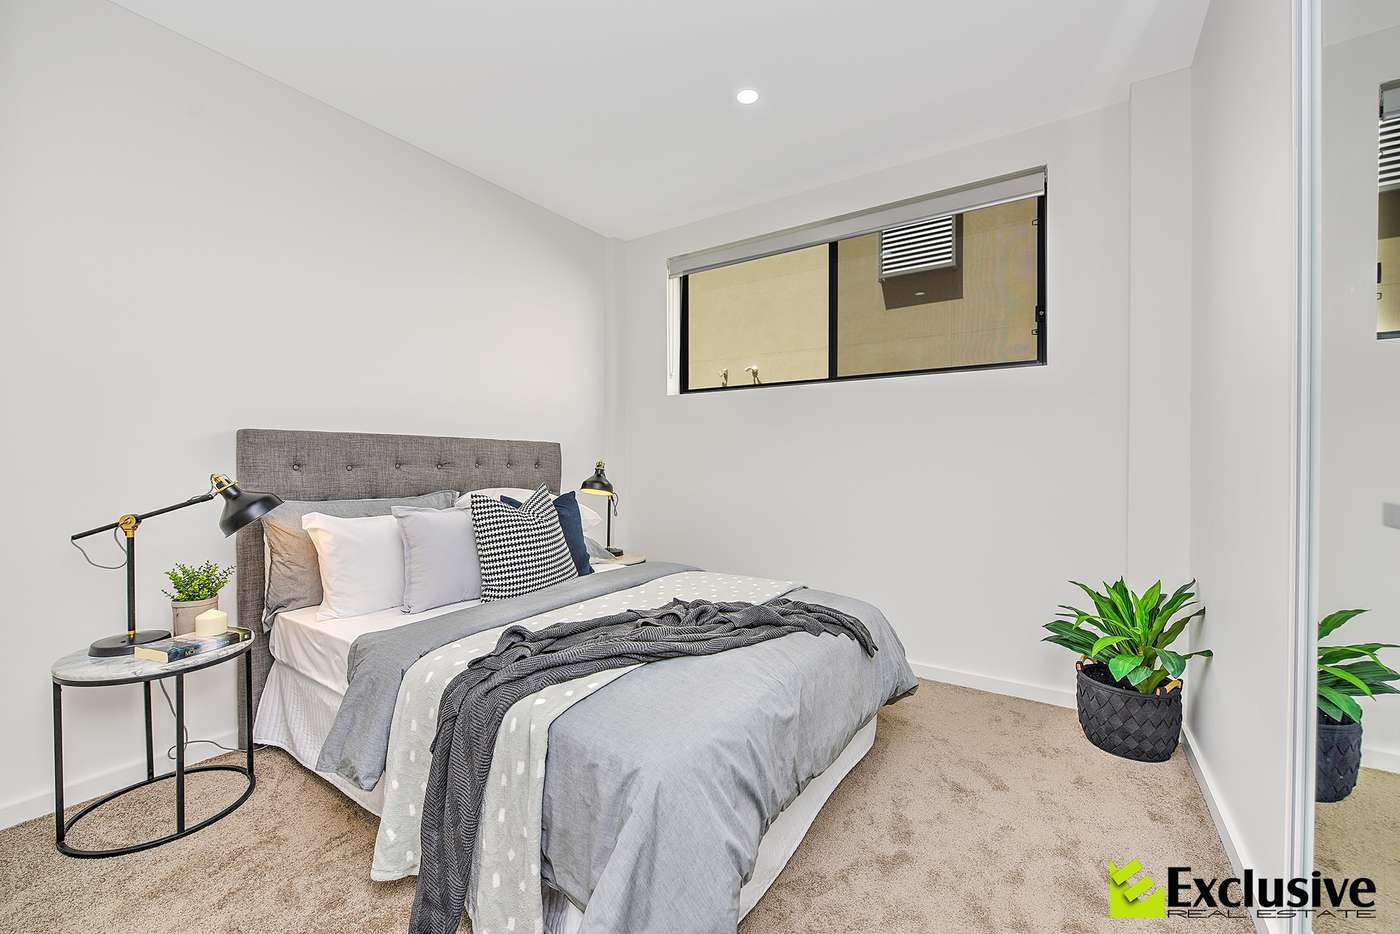 Fifth view of Homely apartment listing, 01/36 Tennyson Road, Mortlake NSW 2137